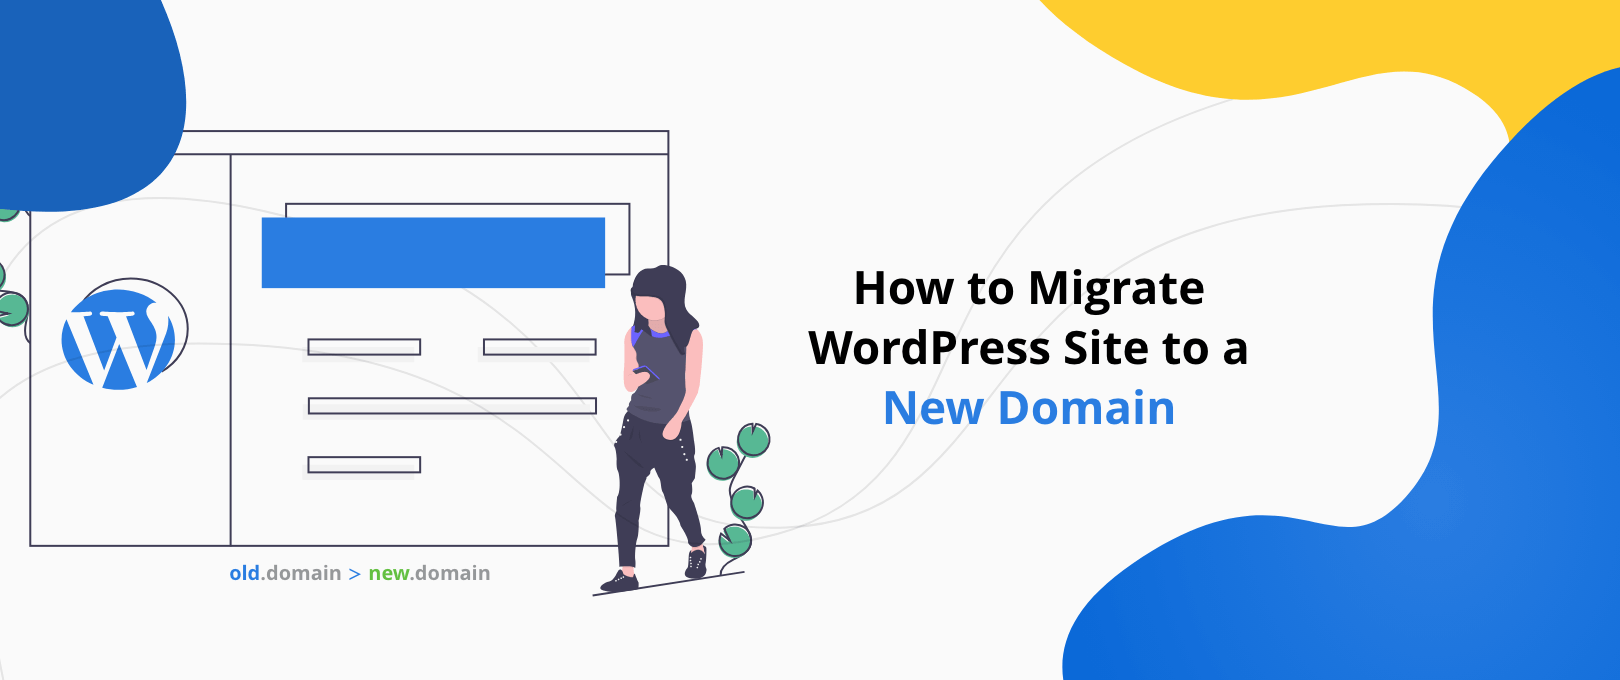 Migrate WordPress Site to new domain